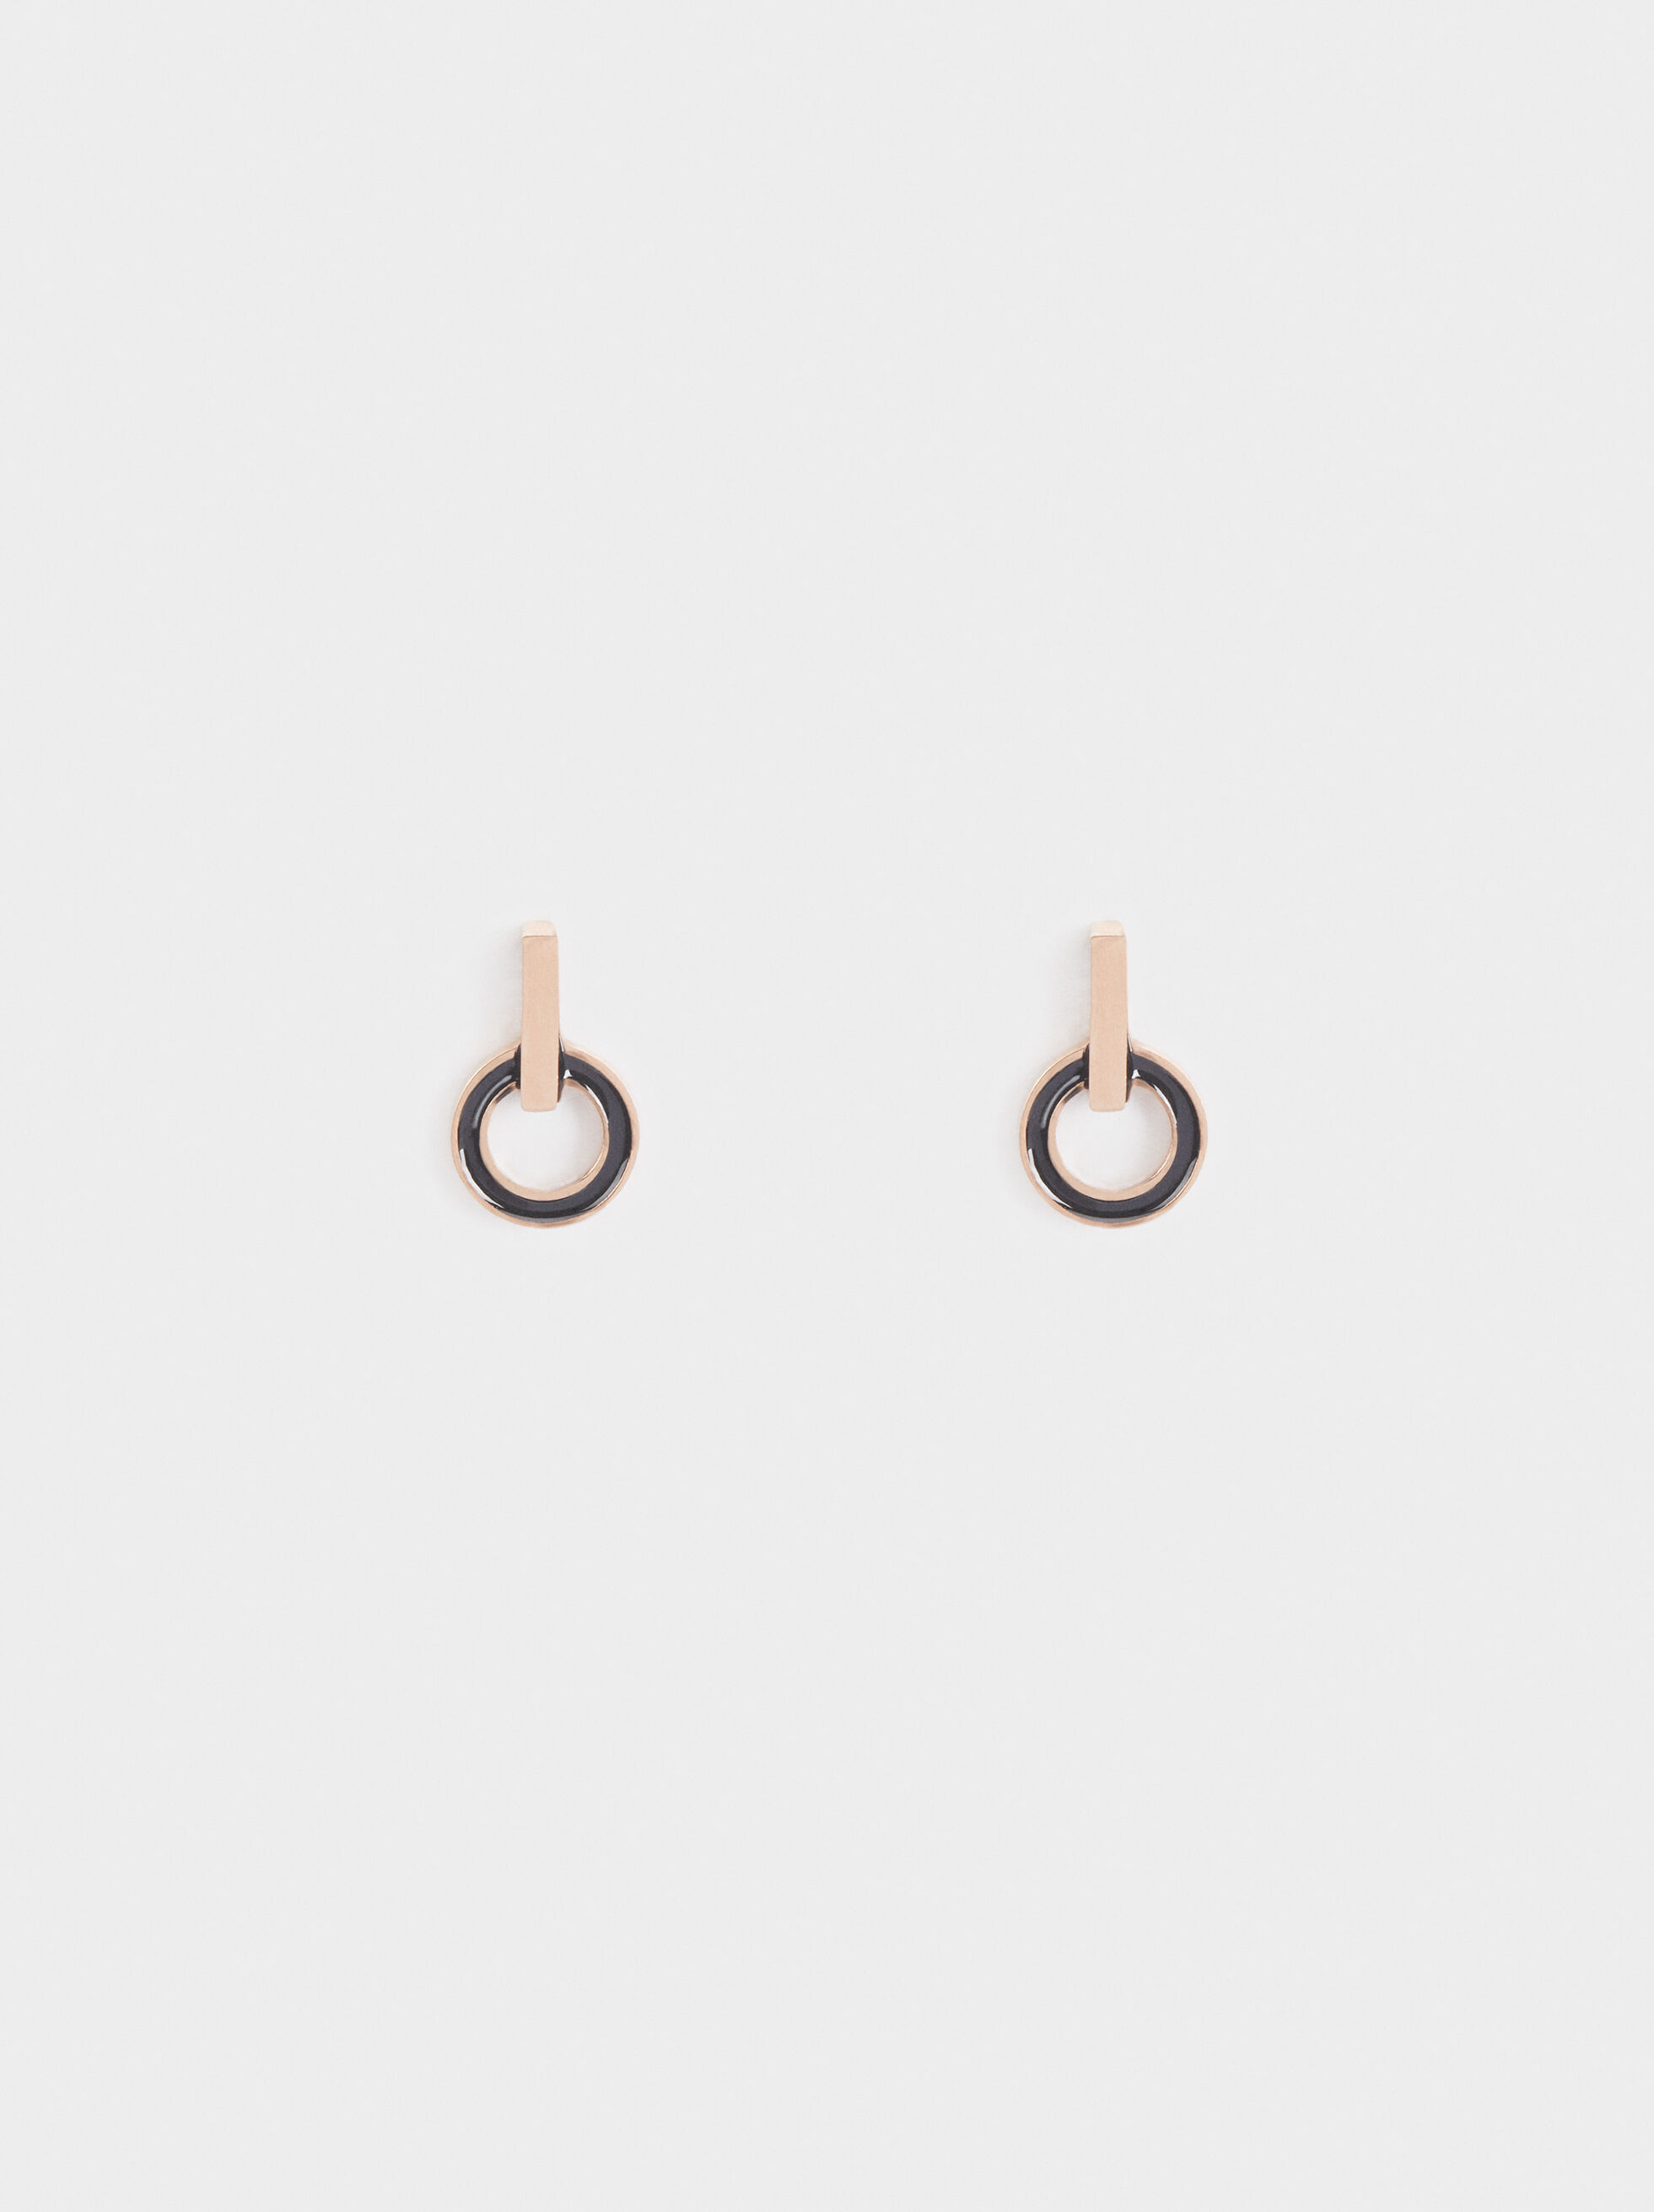 Circular Steel Short Earrings, Orange, hi-res